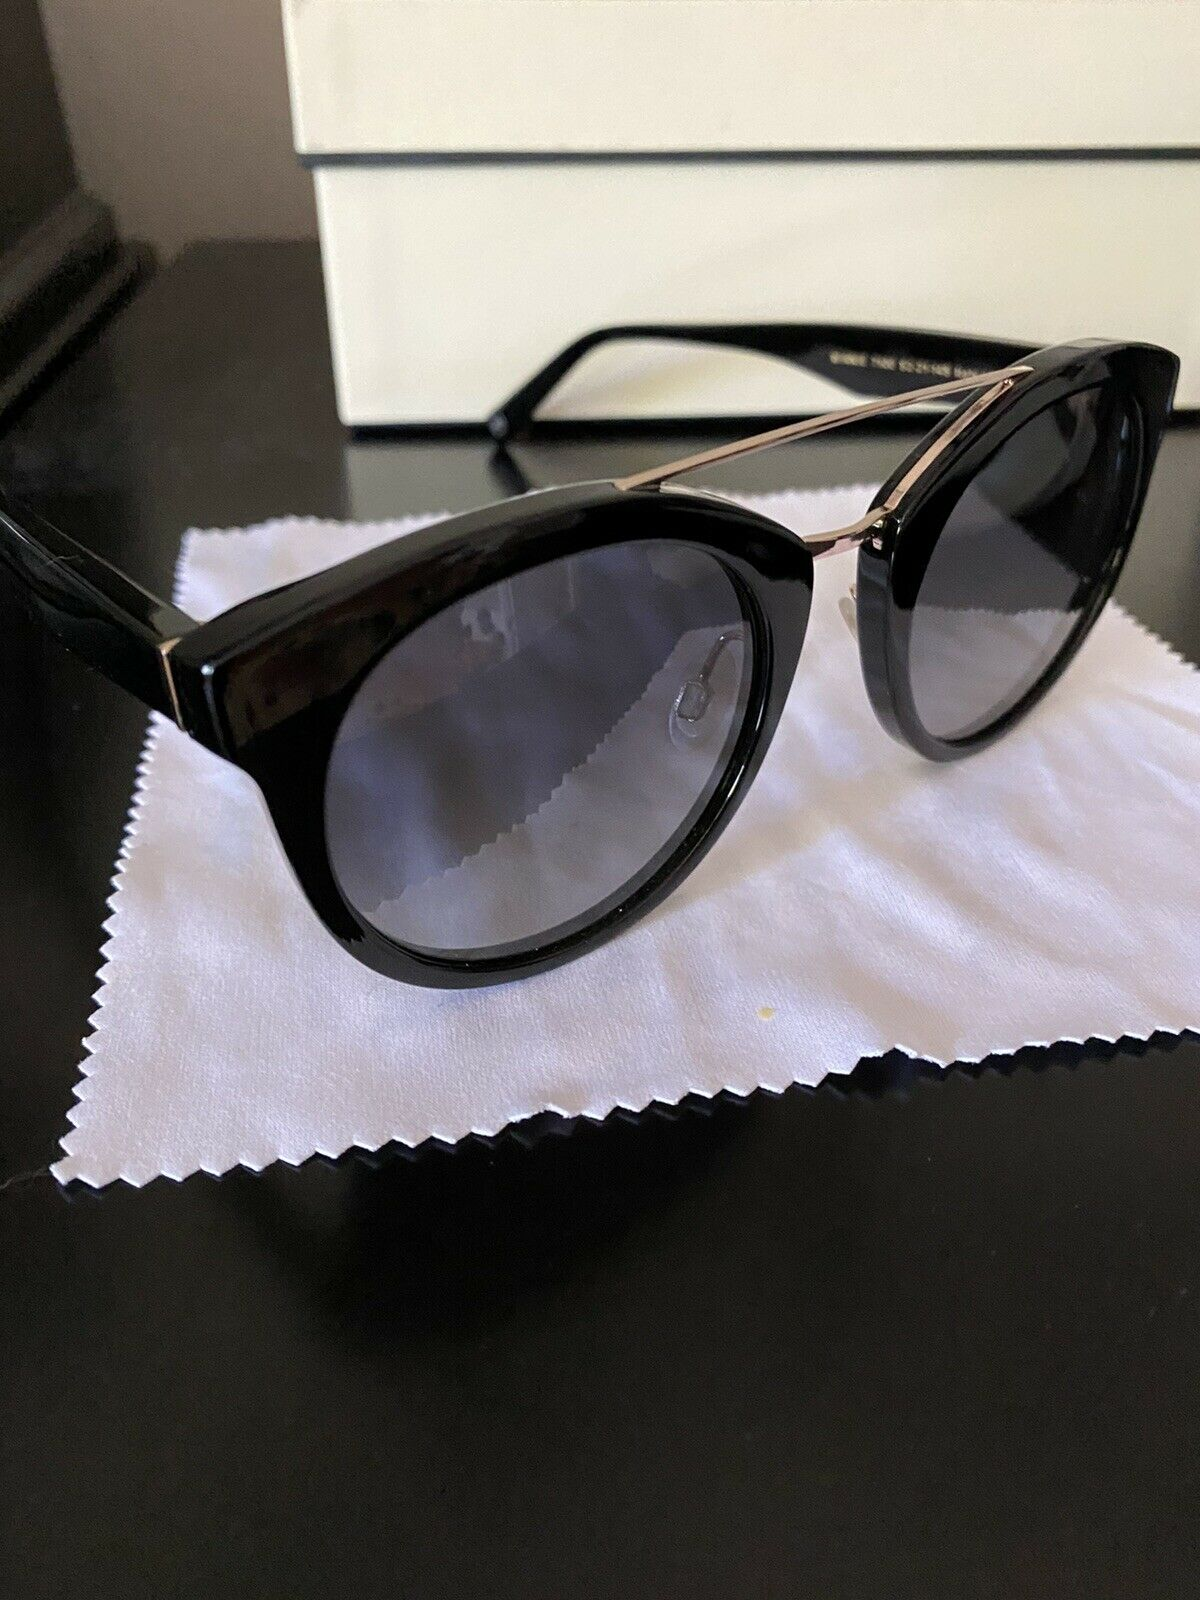 Warby Parker Winnie Sunglasses (made In Italy) - image 4